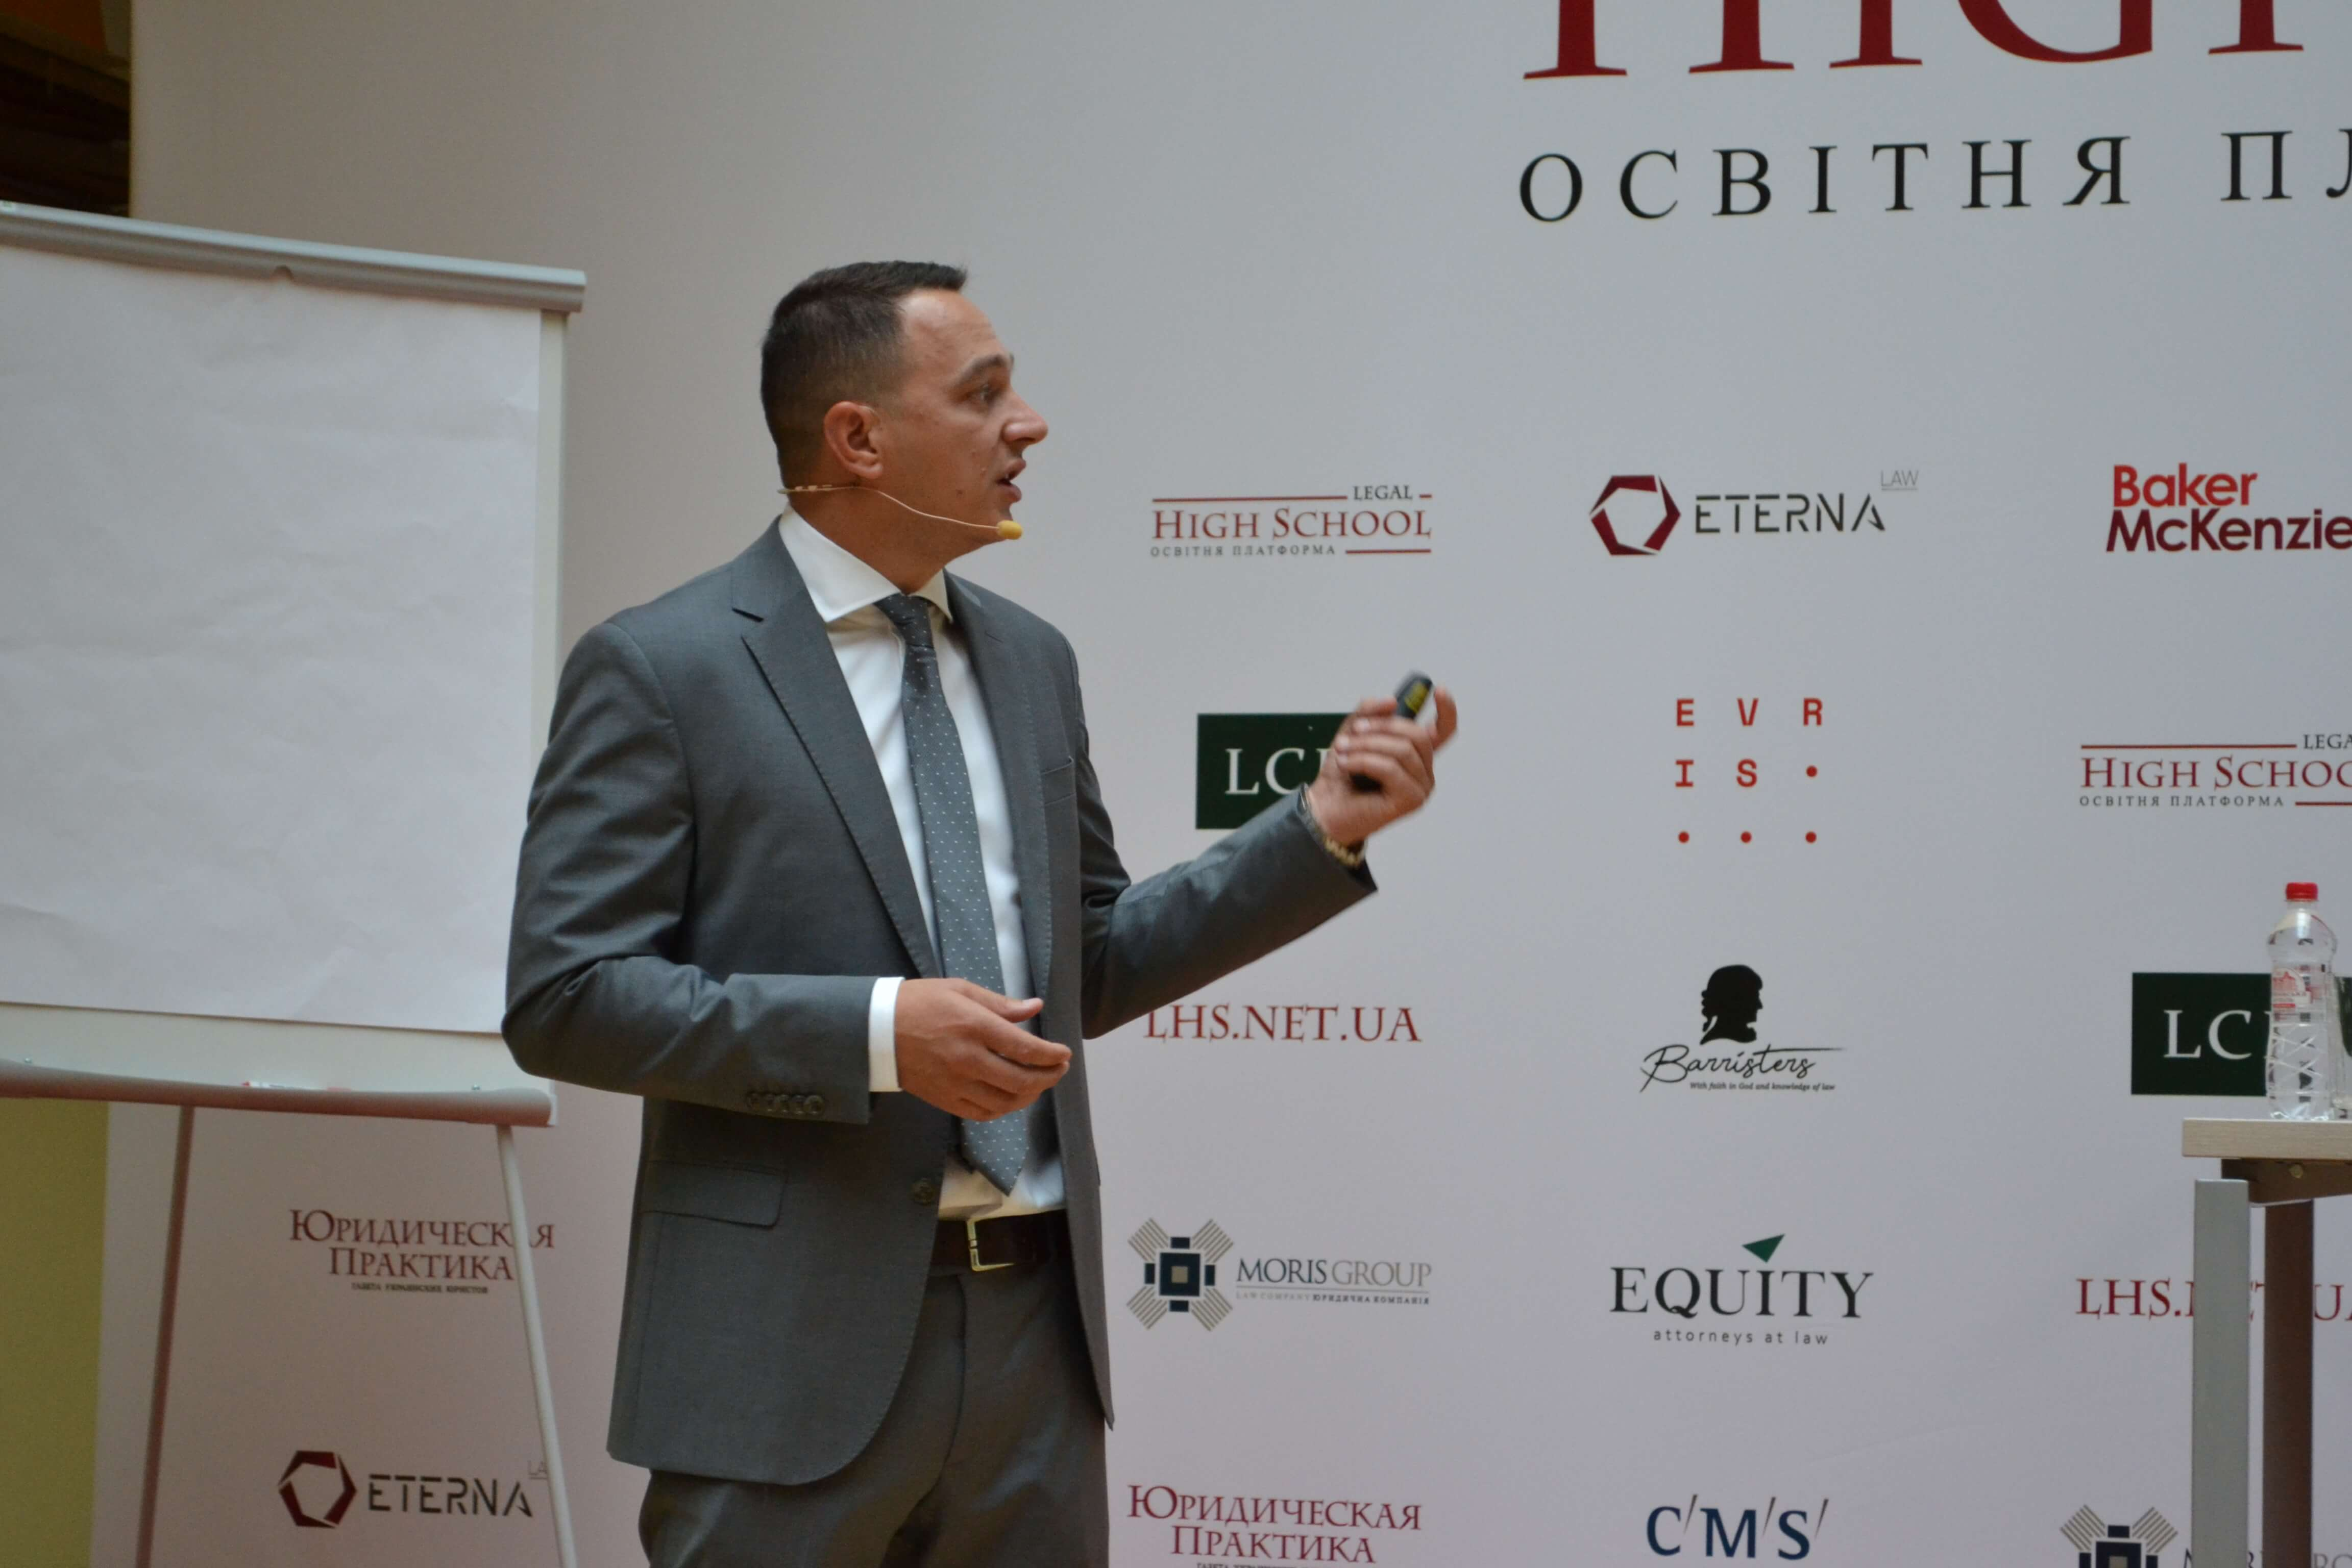 Taras Poshyvanyuk told students at the Legal High School about asset forfeiture